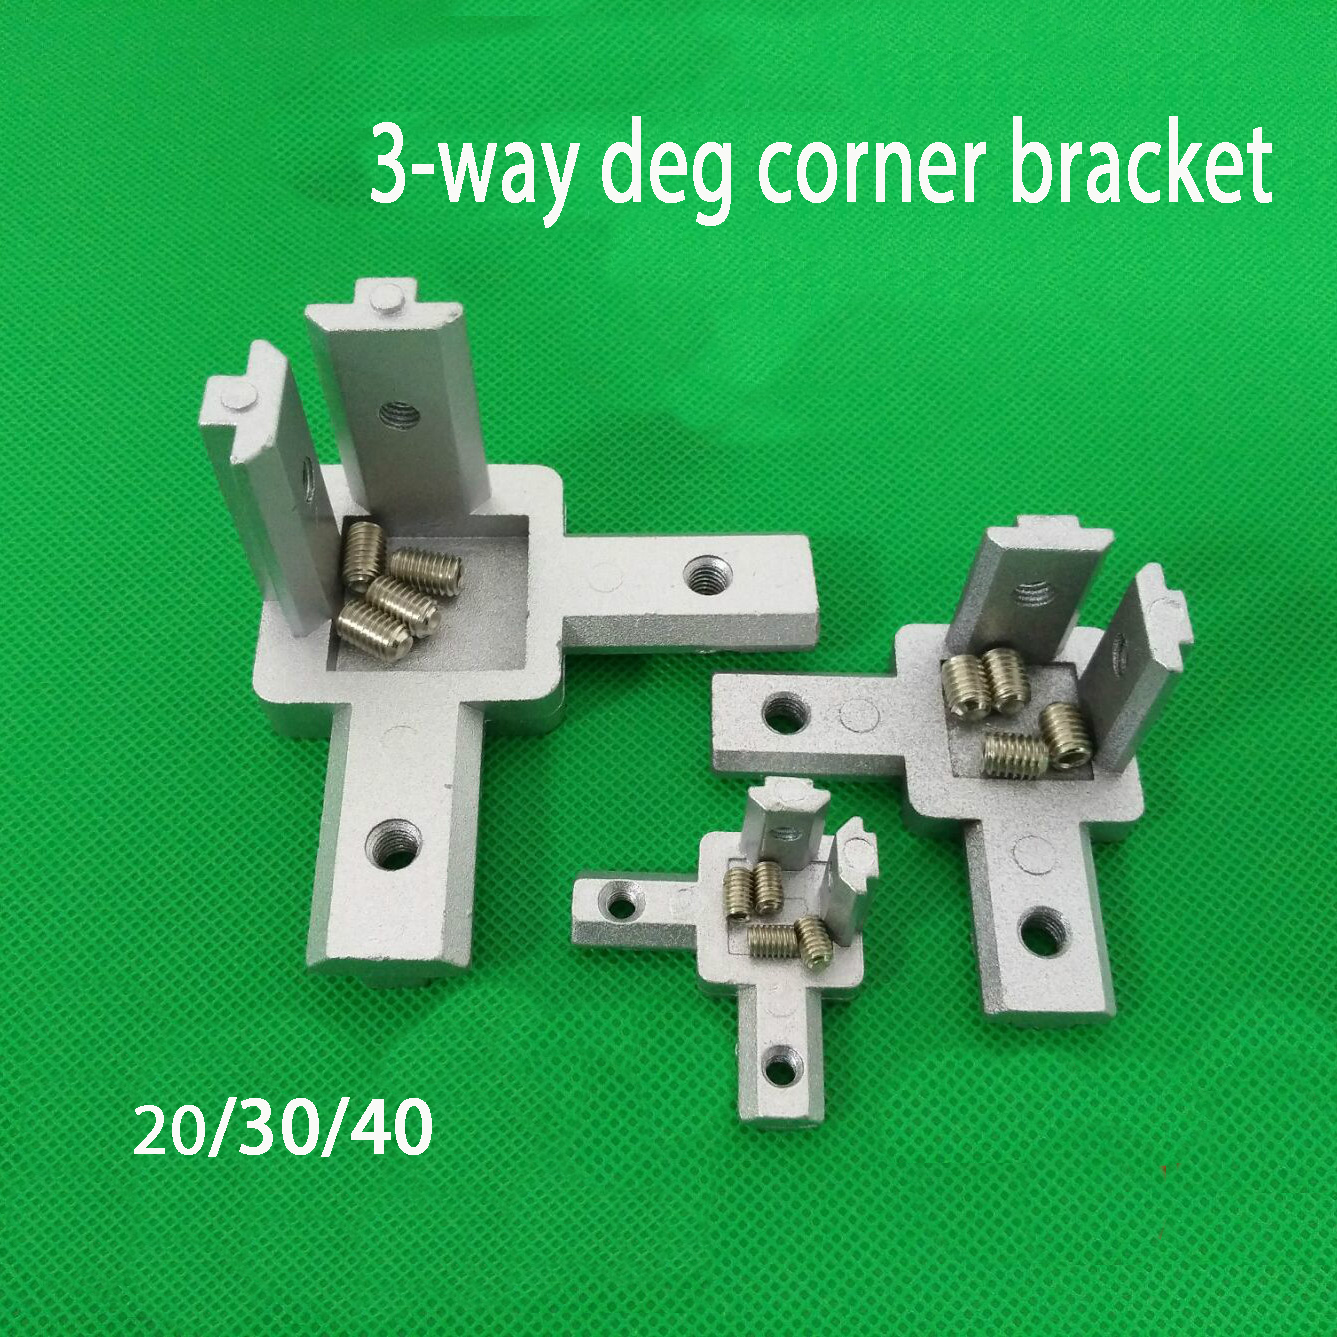 4pcs 3D printer 2020 3030 4040 T Slot Aluminum Profile 3-way 90 deg inside corner bracket Interior Connector f/ Alu-profile image